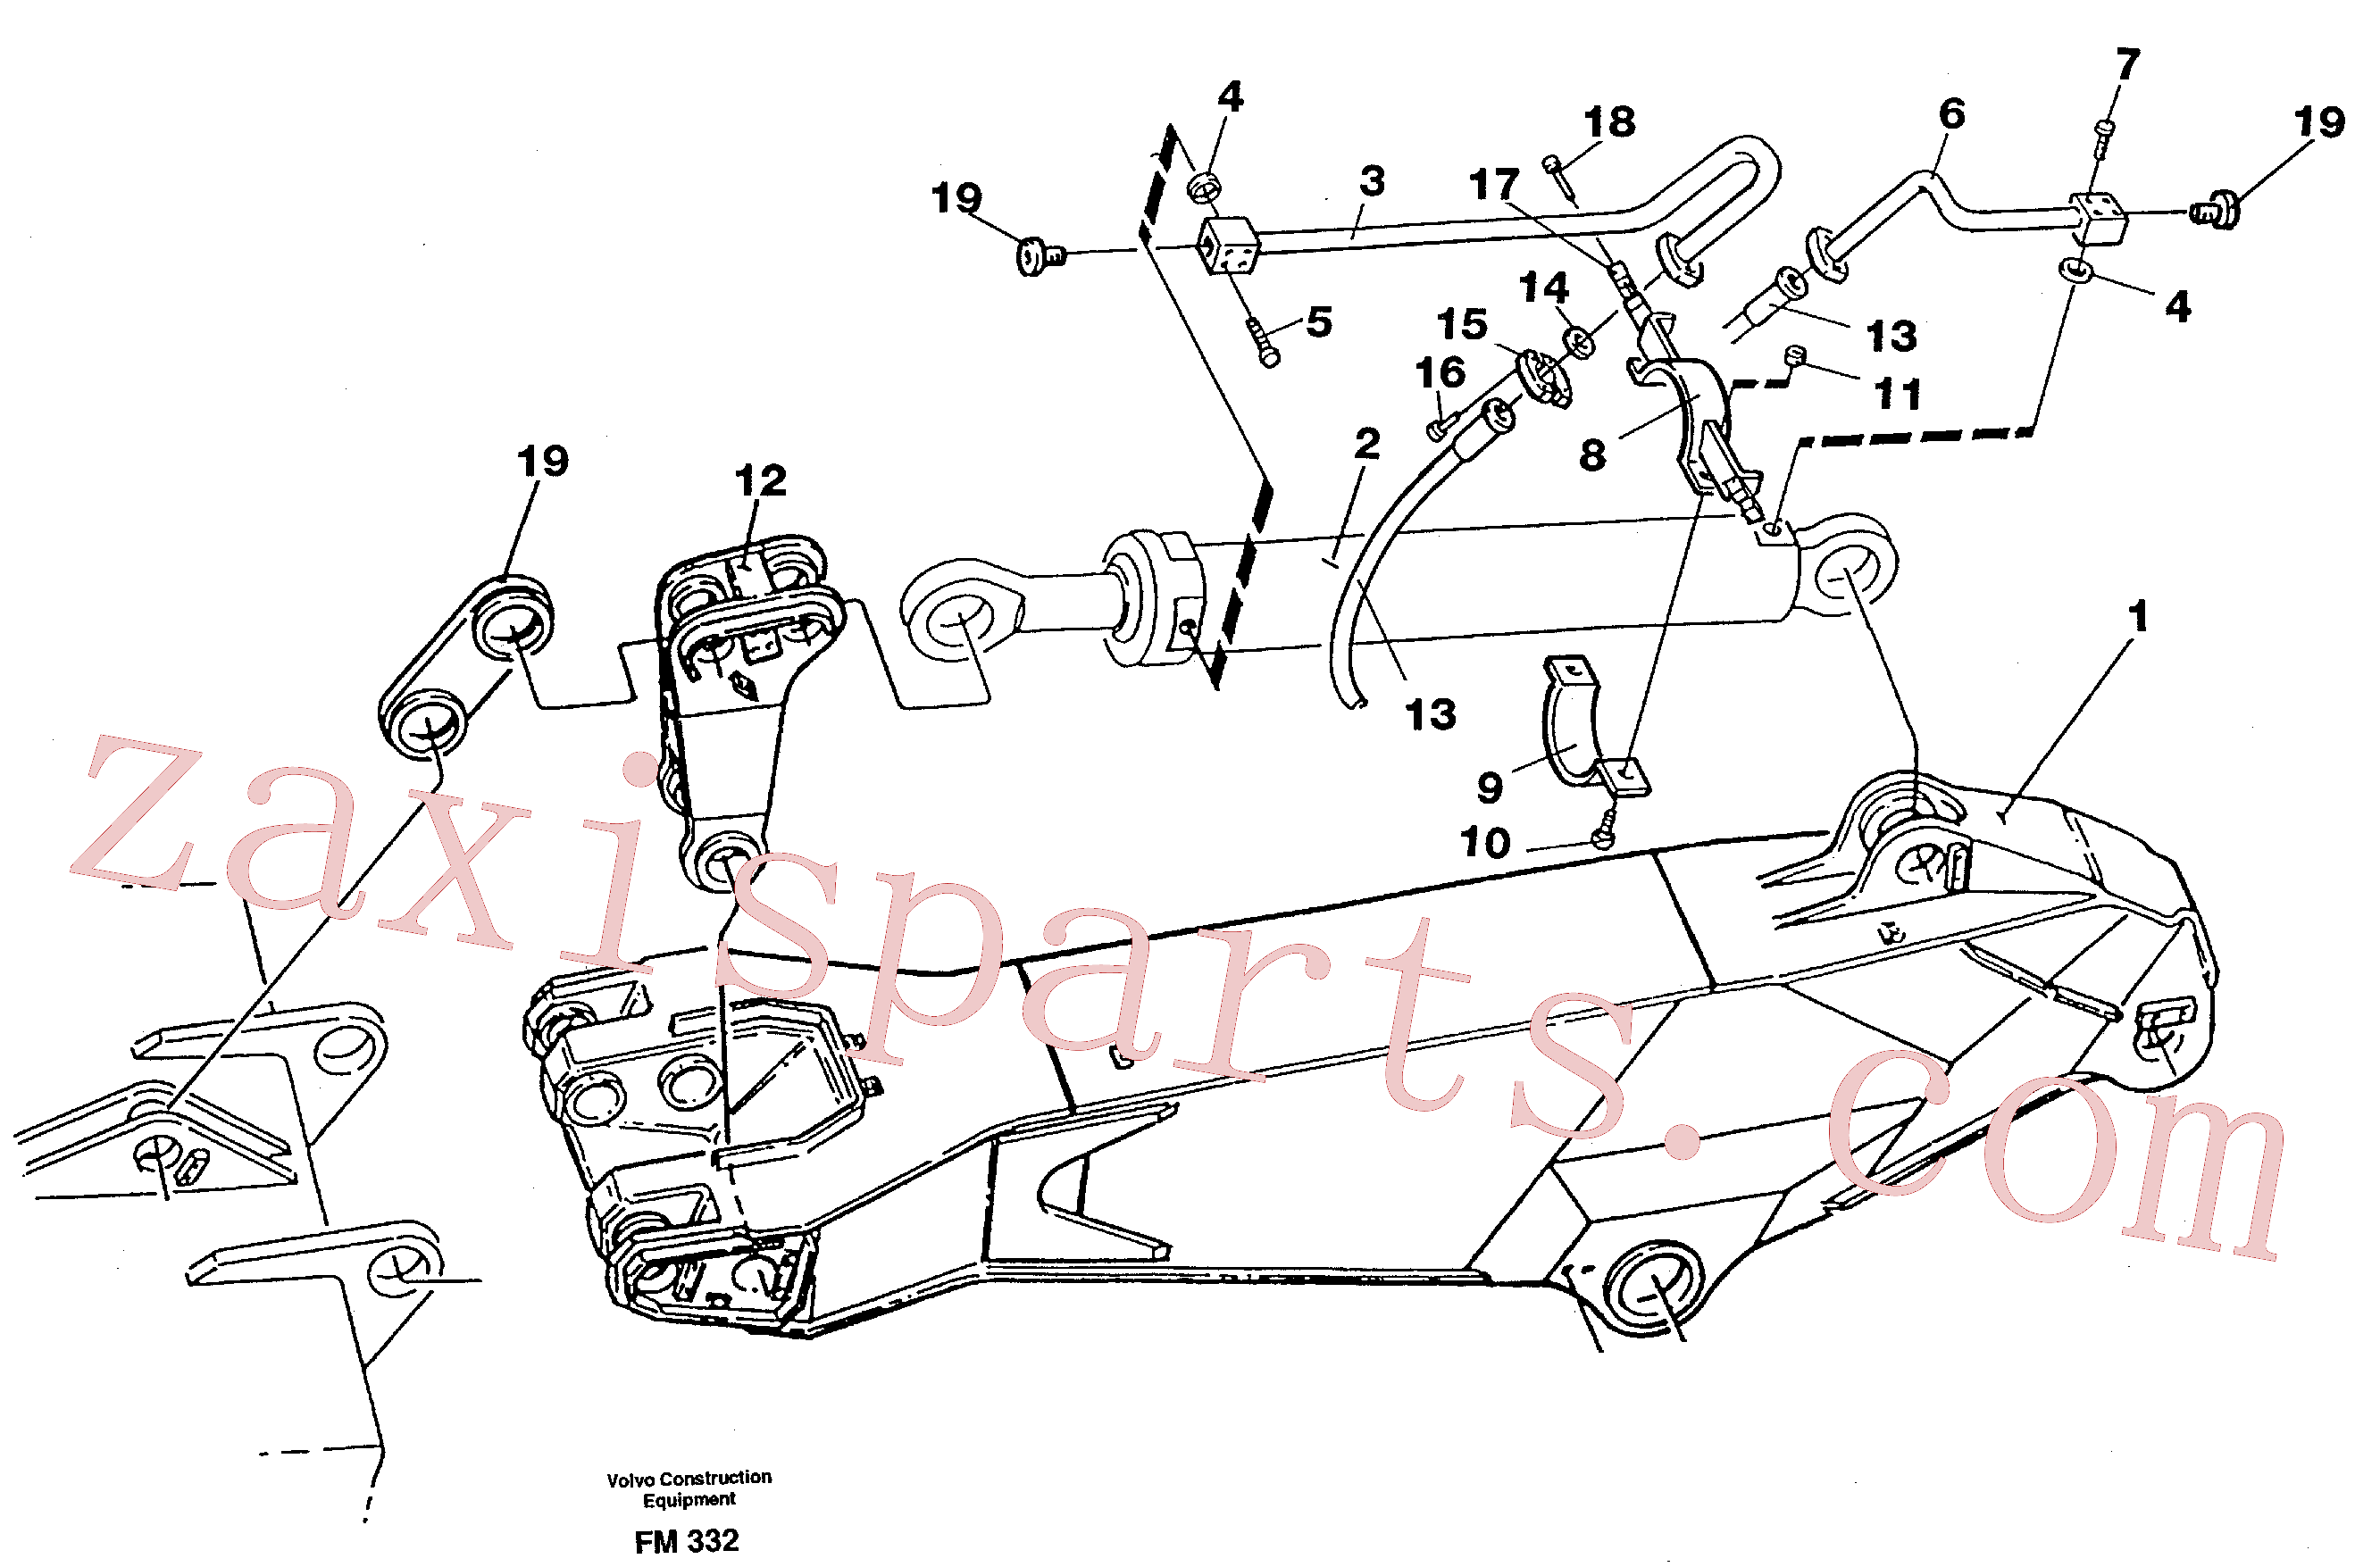 VOE14264061 for Volvo Hydraulic system, dipper arm 3.0 m(FM332 assembly)